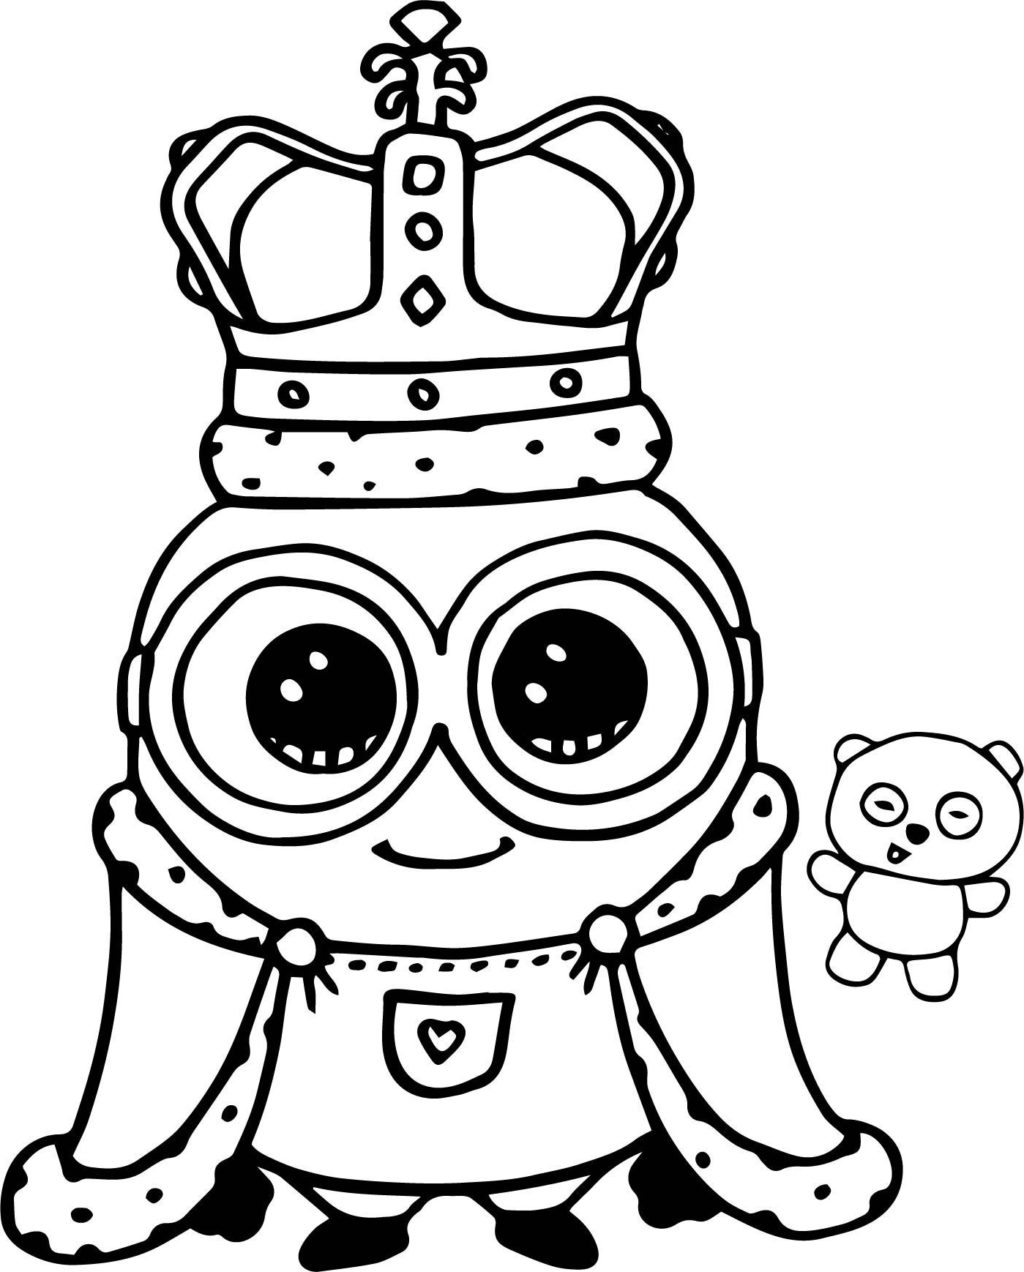 Despicable Coloring Pages Coloring Book World Coloring Pages Of Minionsble Despicable Me